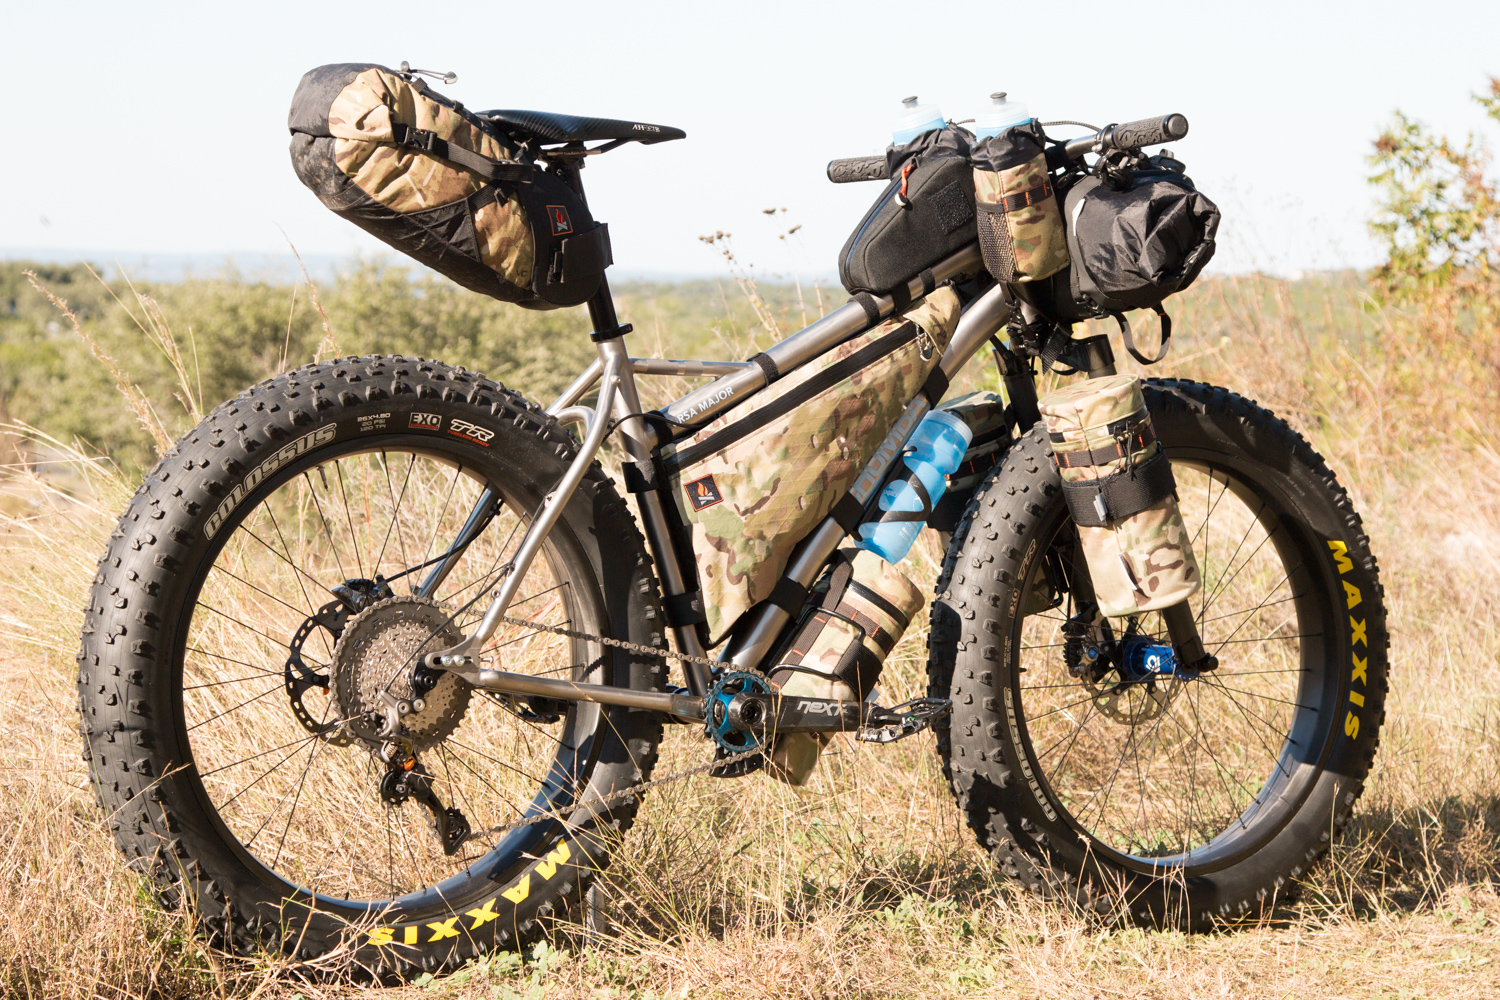 Monida bags can be used like a Rattlesnake Bag on the stem/bar, on fork legs, or on fatbikes under their downtubes & inside main triangles.